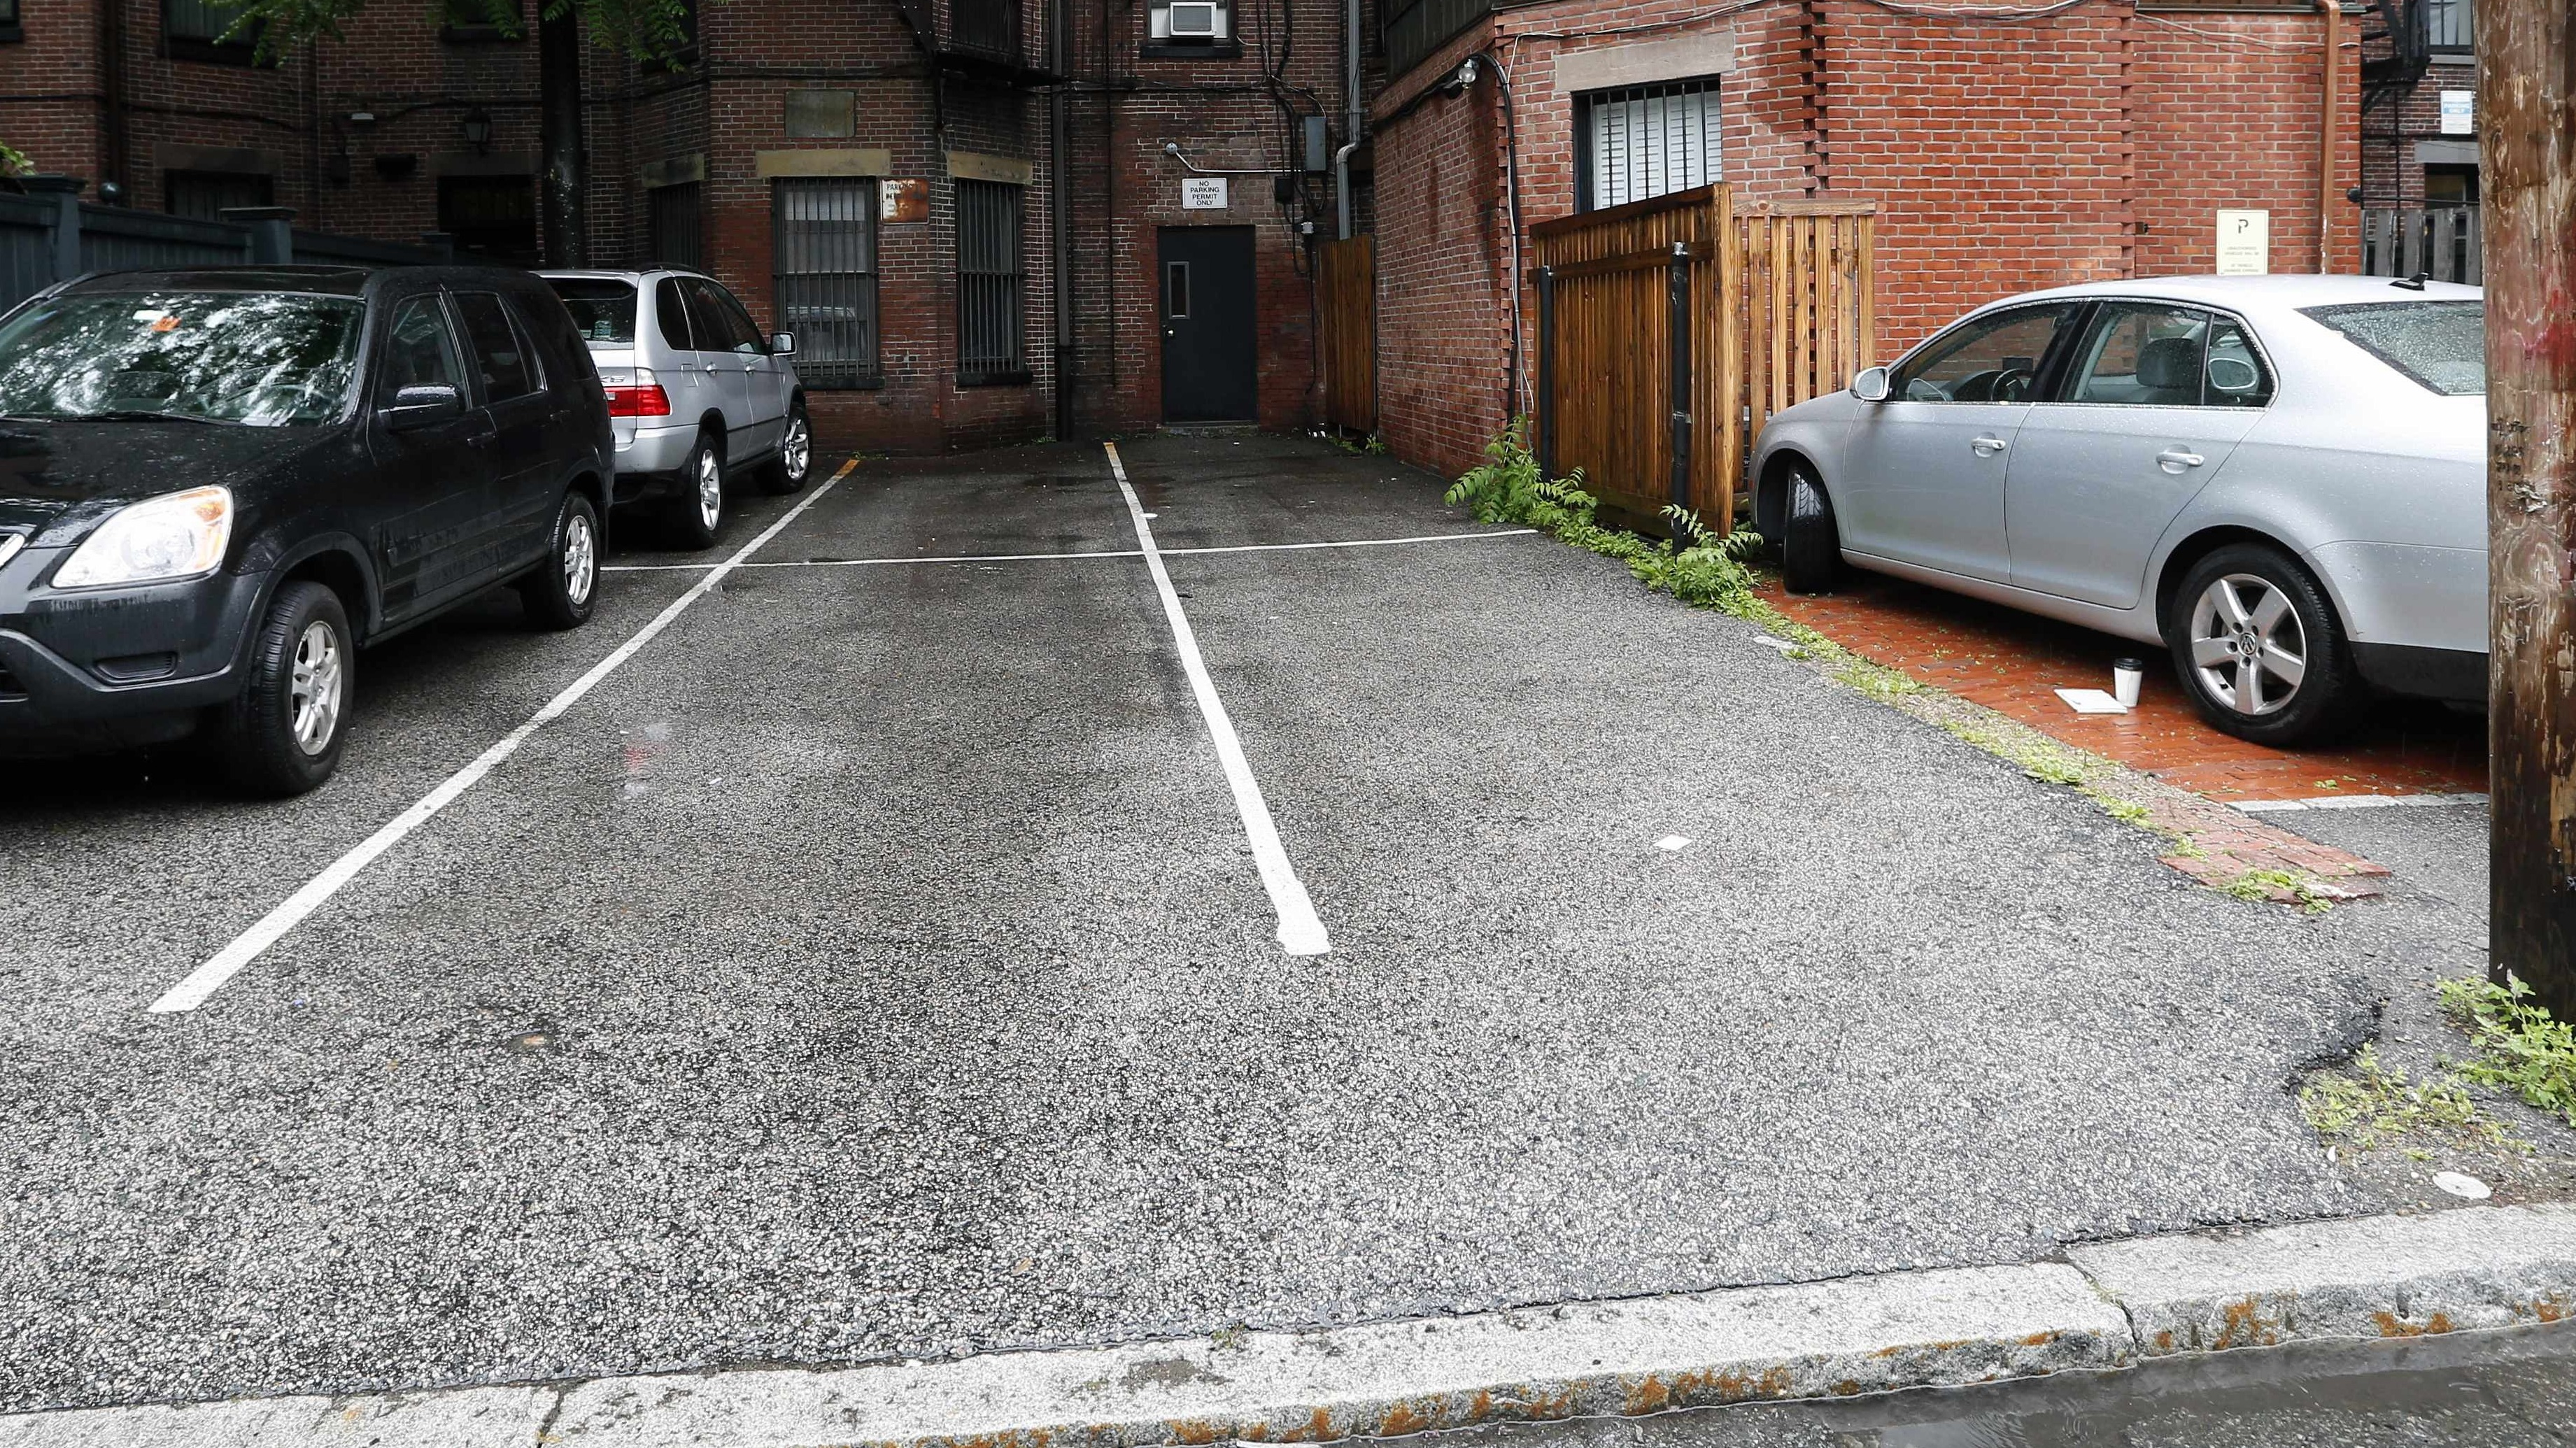 The Parking Spots That Cost More Than Half A Million Dollars